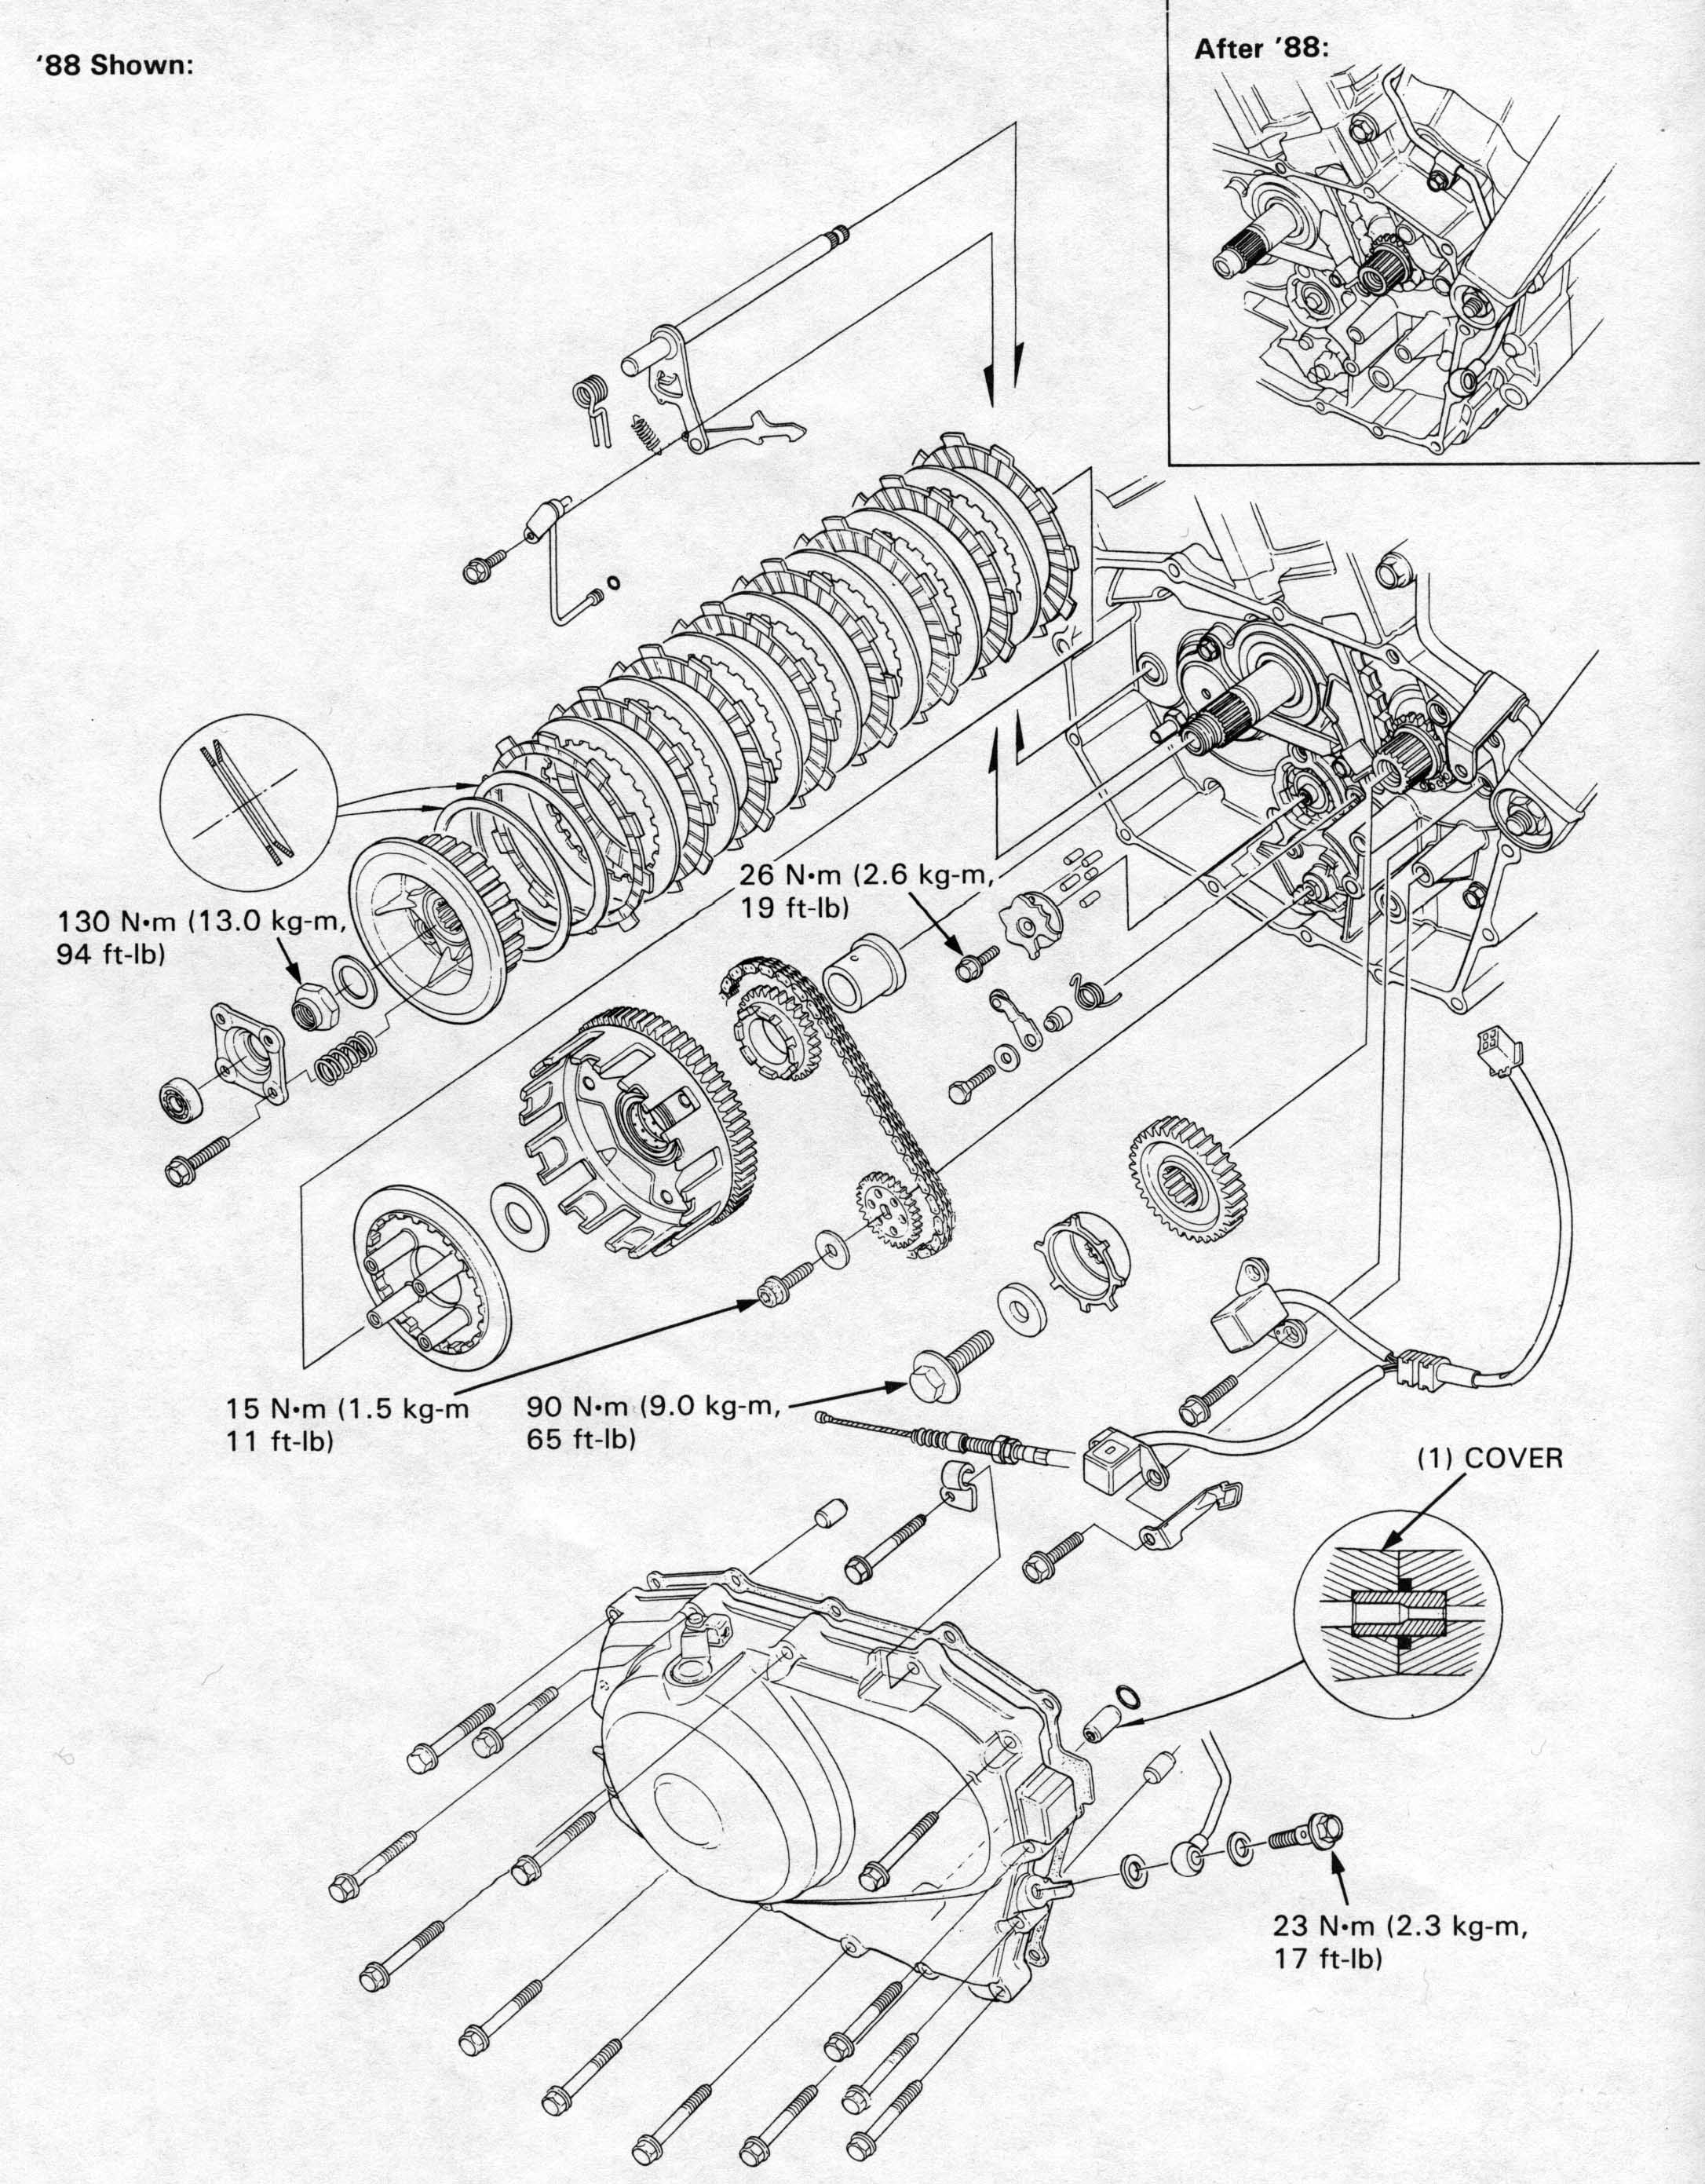 Honda NT650 service manual, section 7, Cluch/Gearshift Linkage